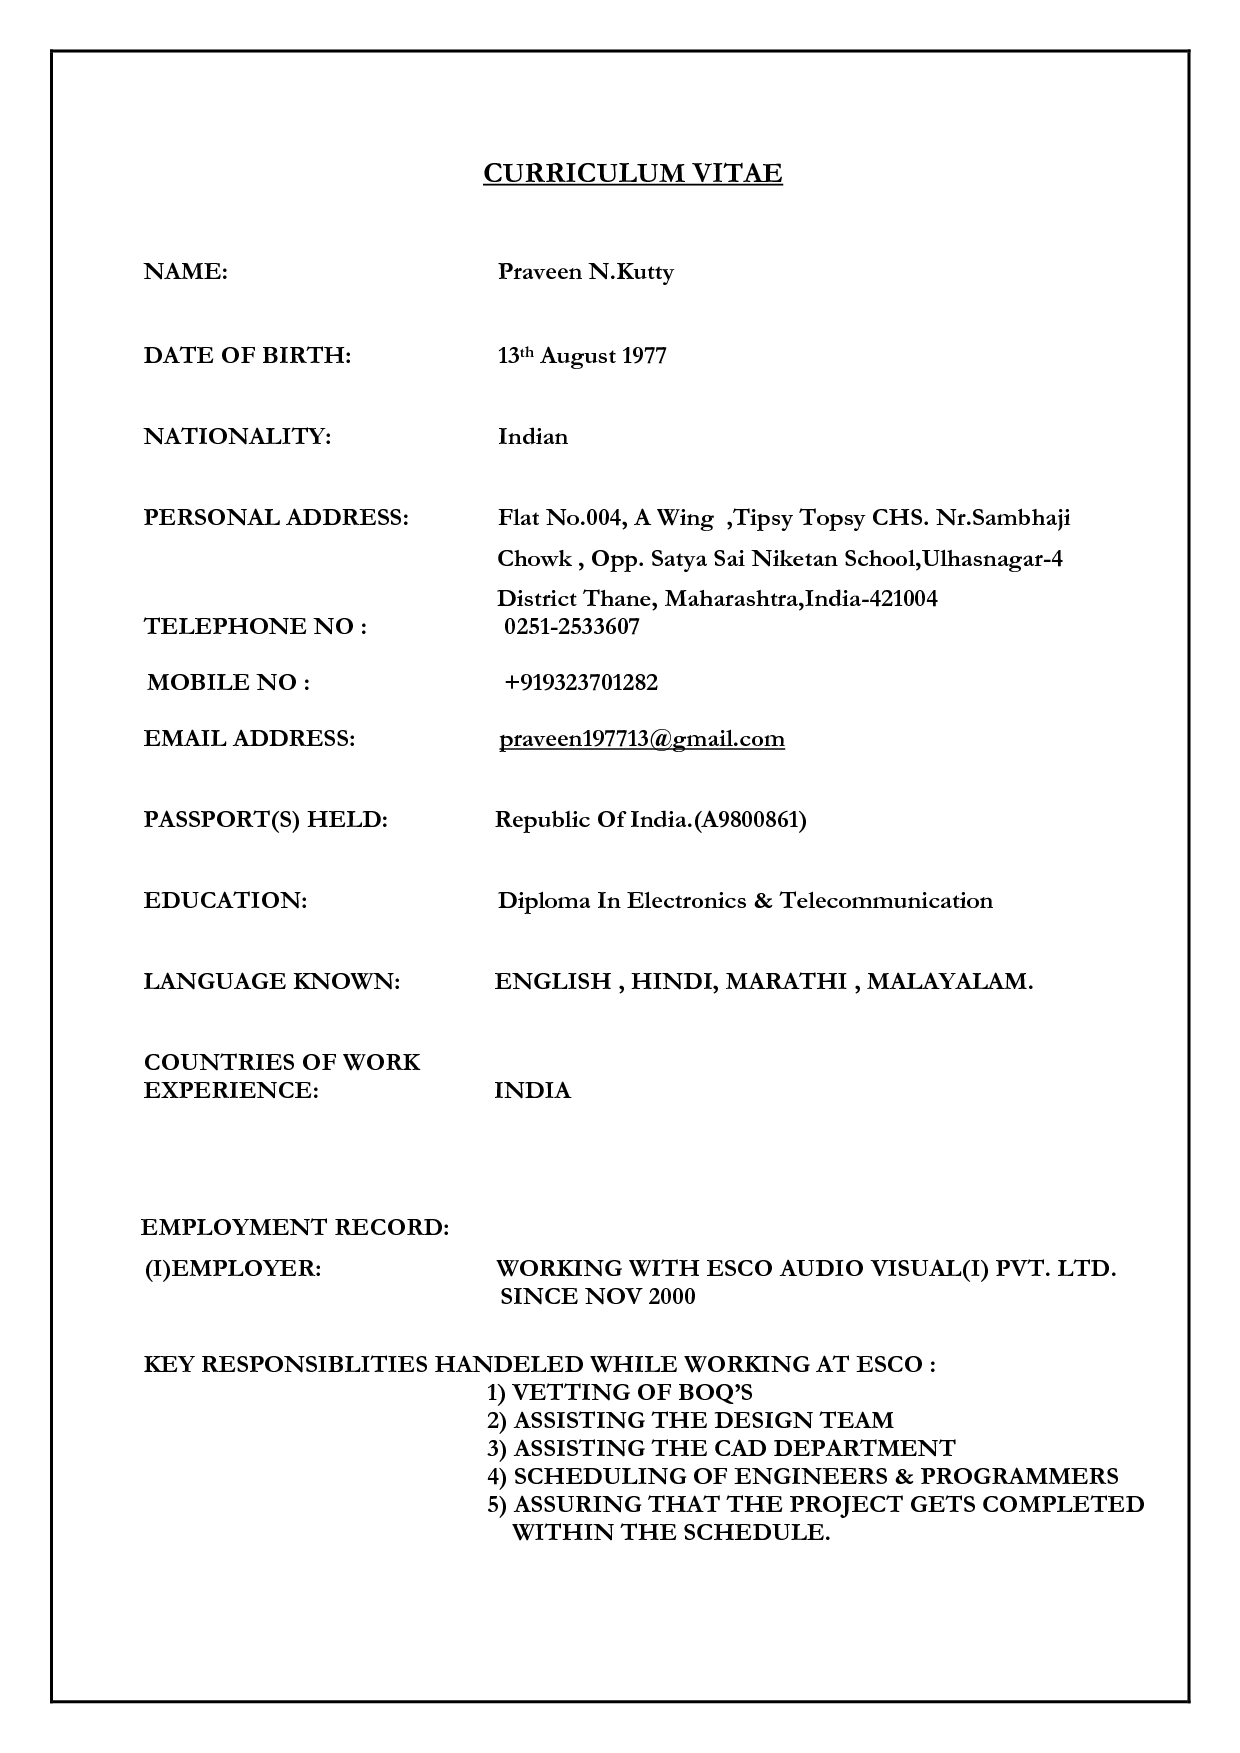 0ff79cef7e57c43dc9c34805dfd313e6 Teacher Job Resume Format In India on teacher assistant resume no experience, teacher resume downloadable, teacher resume description, teacher resume pdf, teacher resume references, teacher resume length, teacher resume design, teacher resume tips, teacher cover letter, teacher resume artist, teacher presentation, teacher interview tips, education cover letter format, teacher resume writing, teacher resume action words, teacher resume model, teacher resume title, teacher resume keywords, teacher resume help, teacher assistant resume sample,